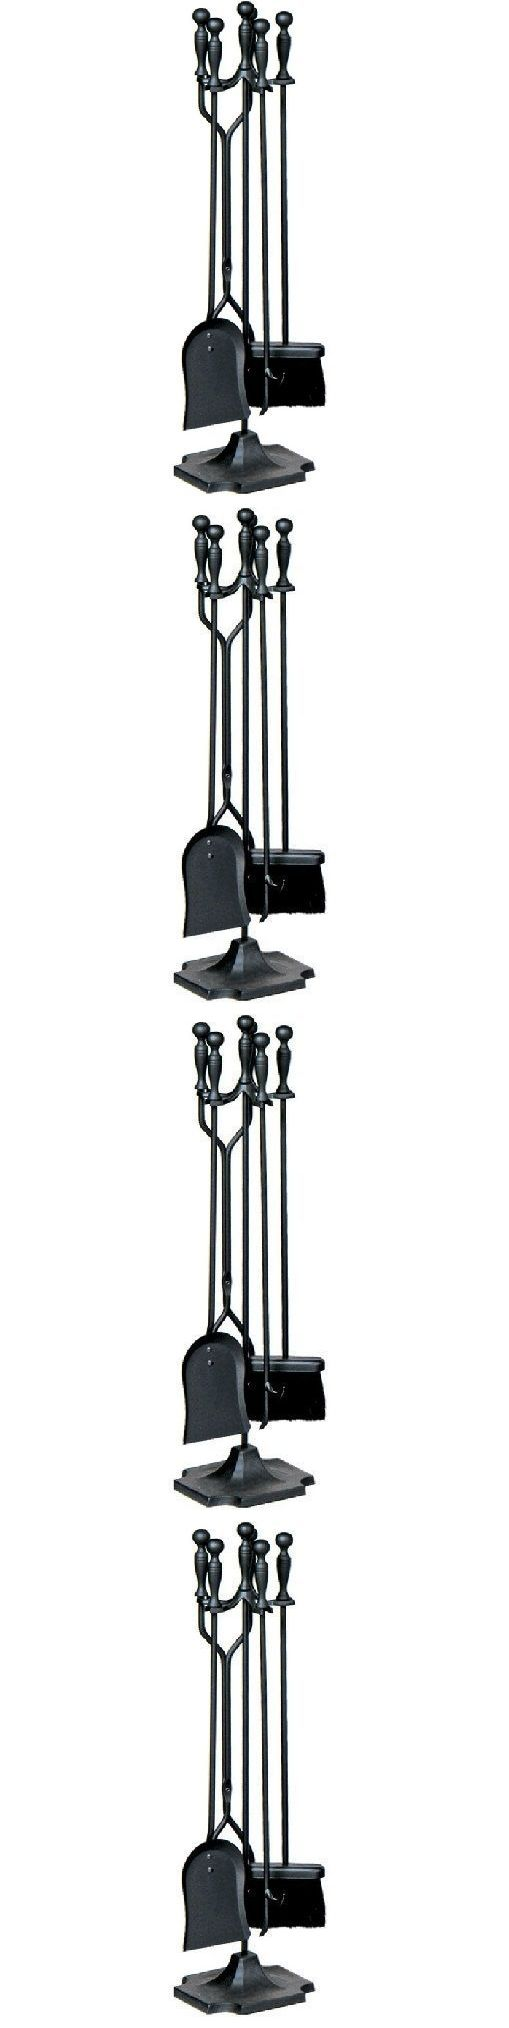 Pokers Tools and Sets 38222: Fireplace Tools Set 5 Piece Shovel Stand Tool Set Metal Steel Poker Black -> BUY IT NOW ONLY: $31.72 on eBay!